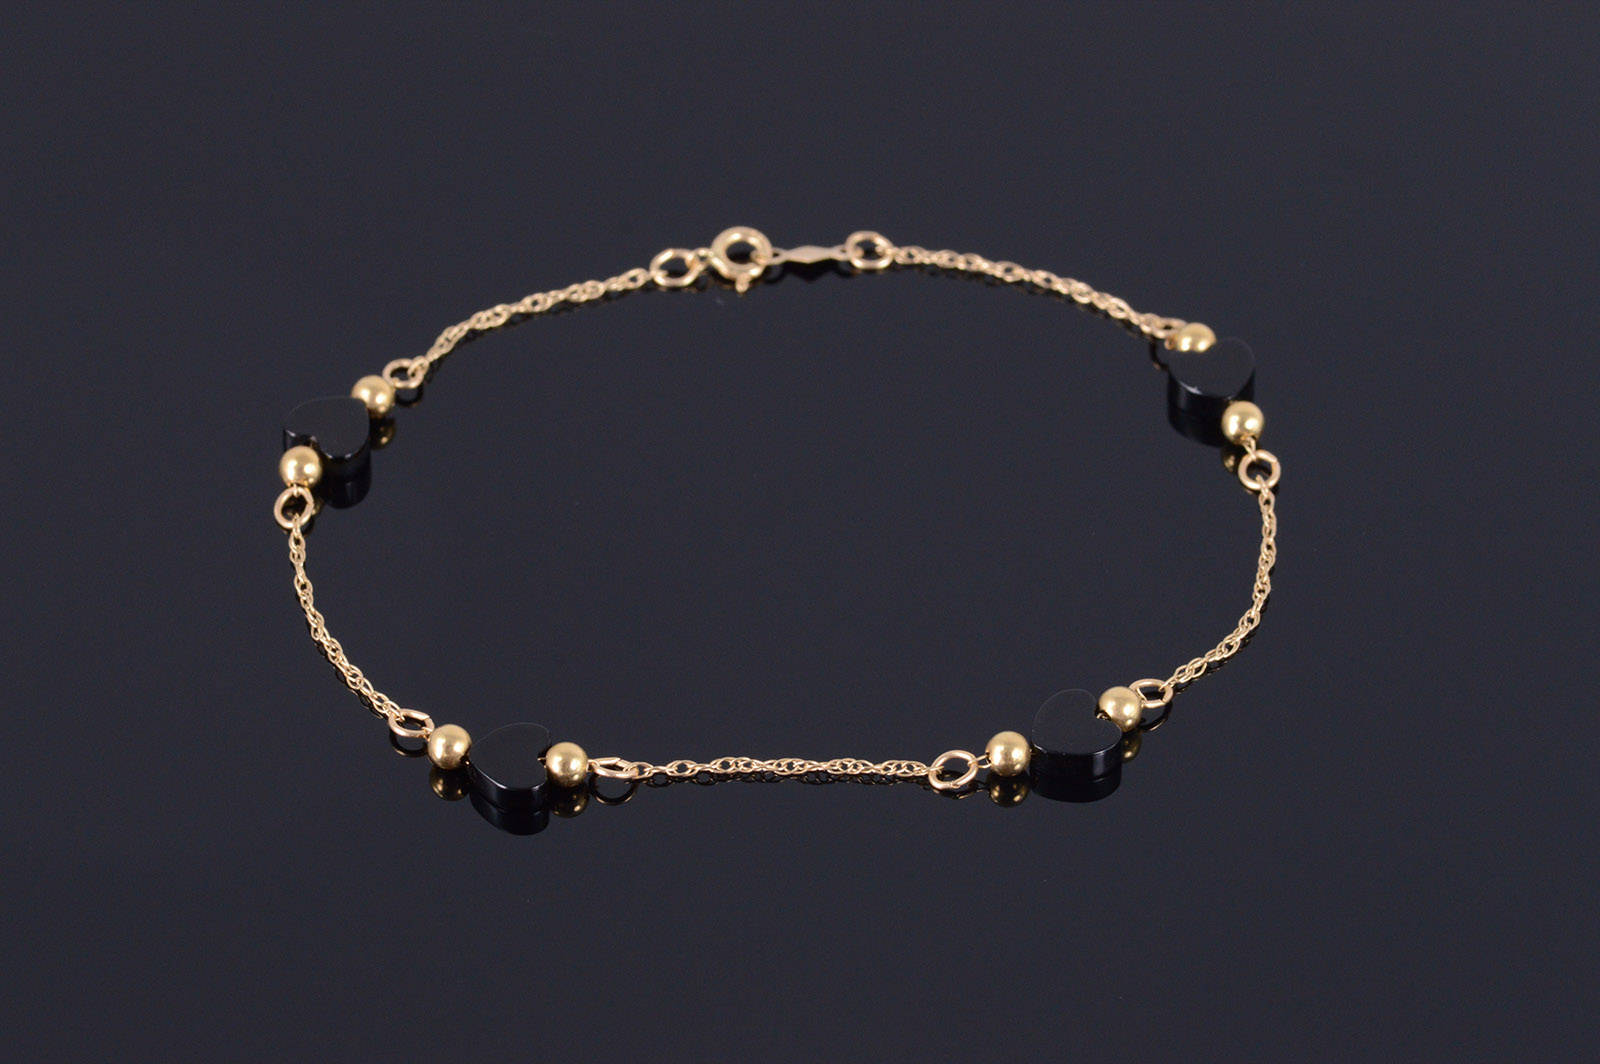 affa3db77a78c7 14K Black Onyx Heart Beaded Rolling Cable Chain Yellow Gold Bracelet ...